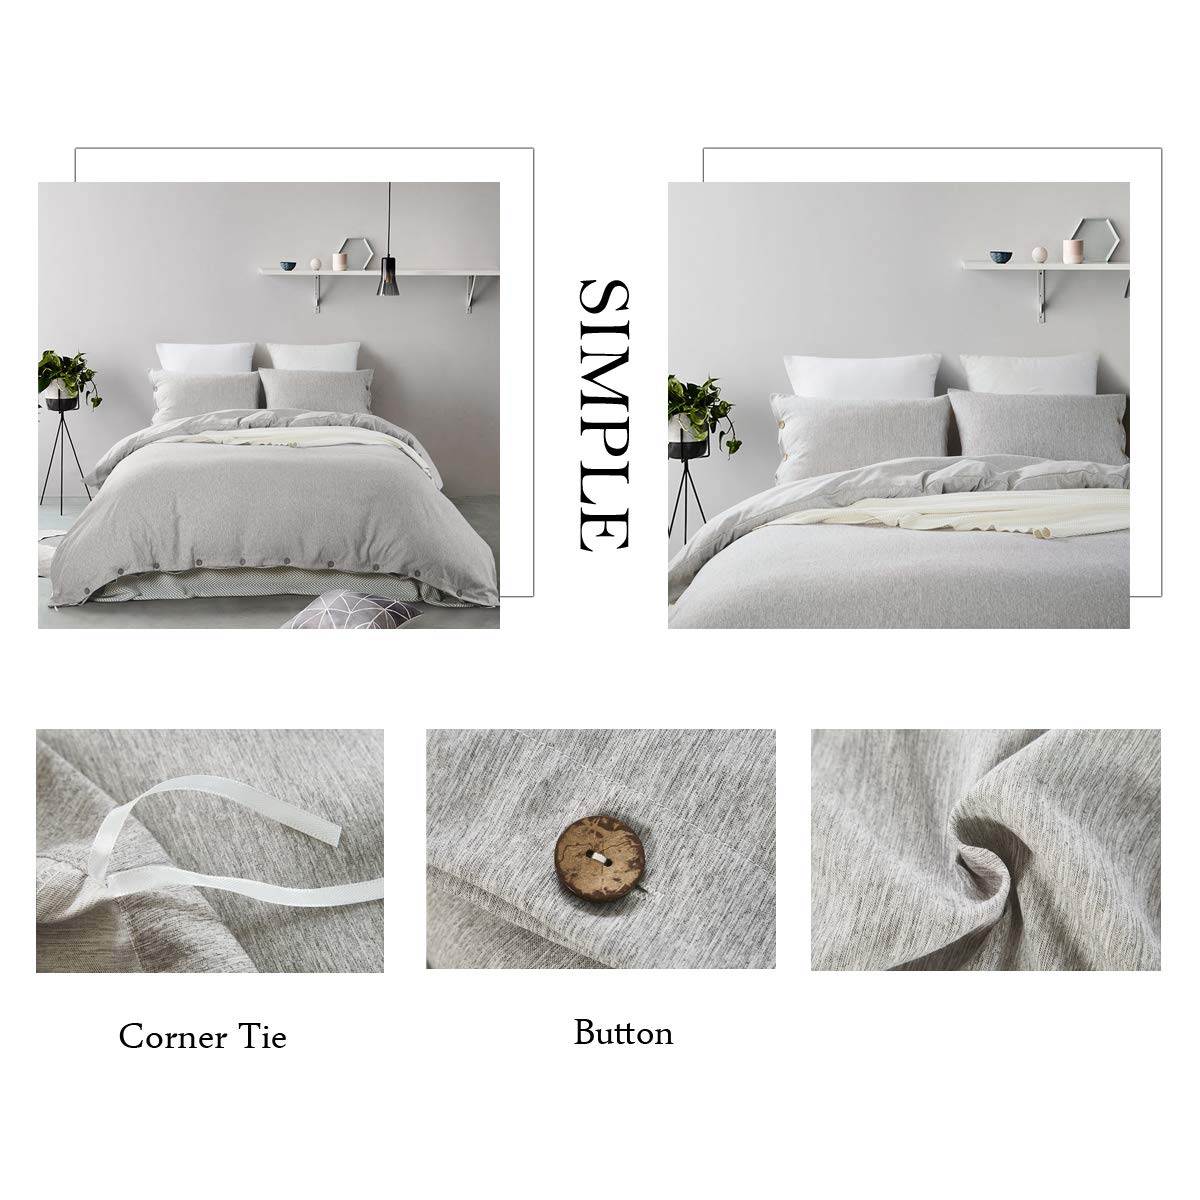 Mukka 3 Pieces Grey Heather Cotton Like Chambray Simple Style Coconut Button Closure Duvet Cover Bedding Set King Brushed Luxury & Breathable Microfiber Easy Care Bed Linen by MUKKA (Image #7)